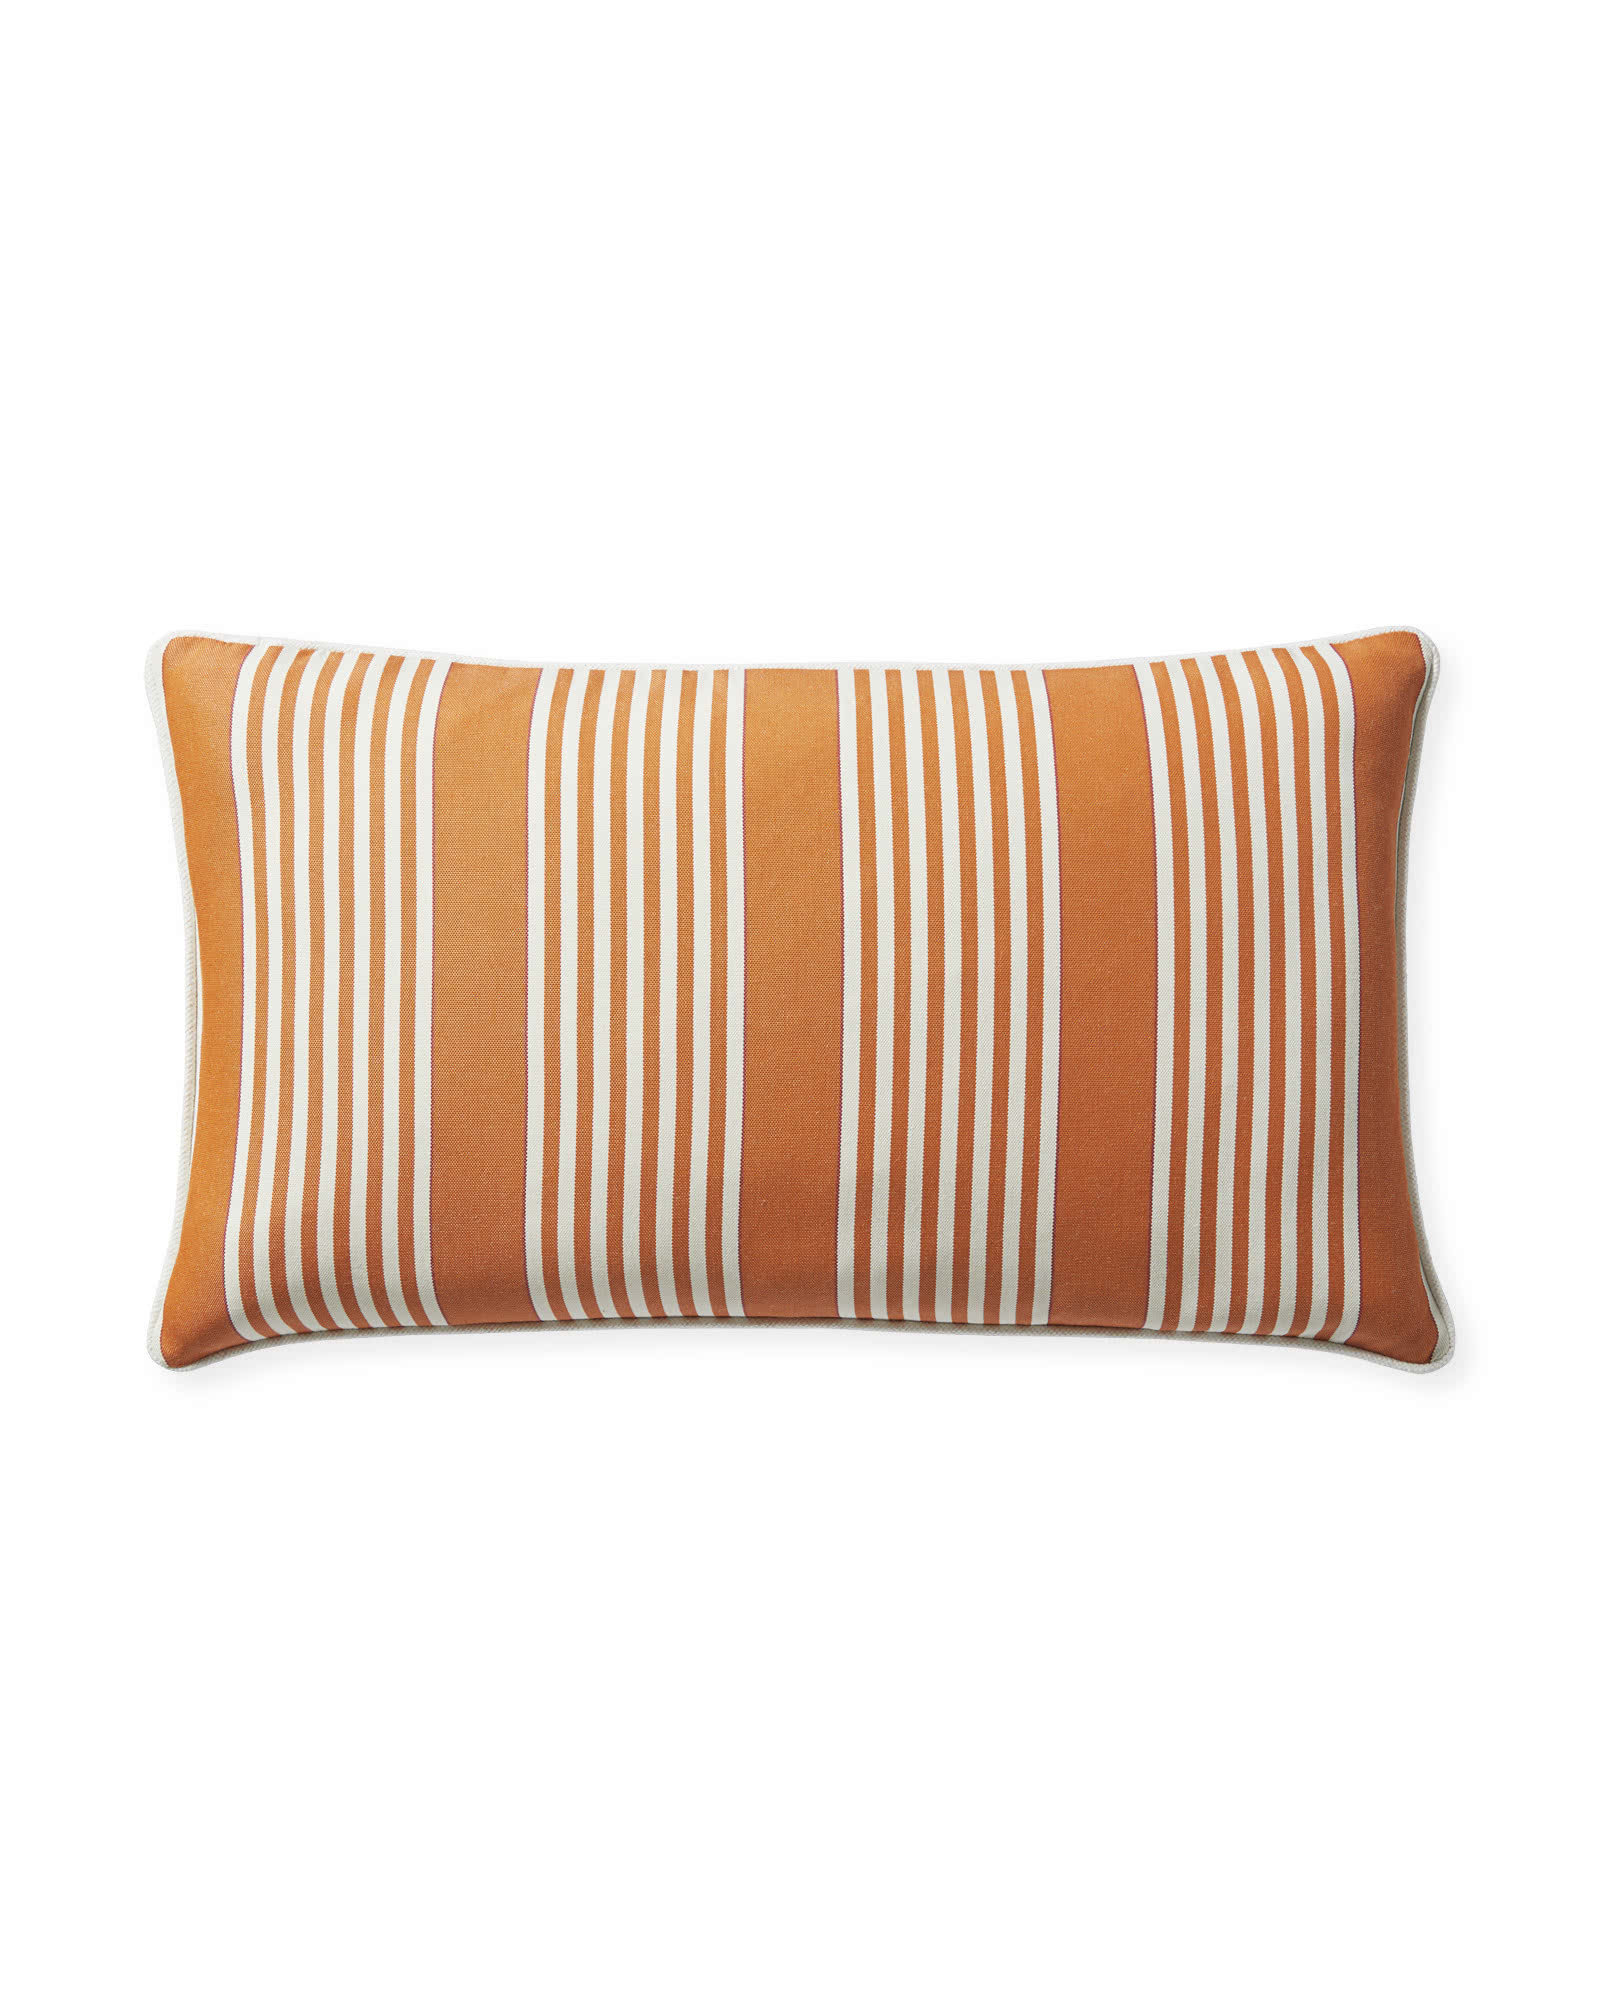 Perennials® Cabana Stripe Outdoor Pillow Cover,